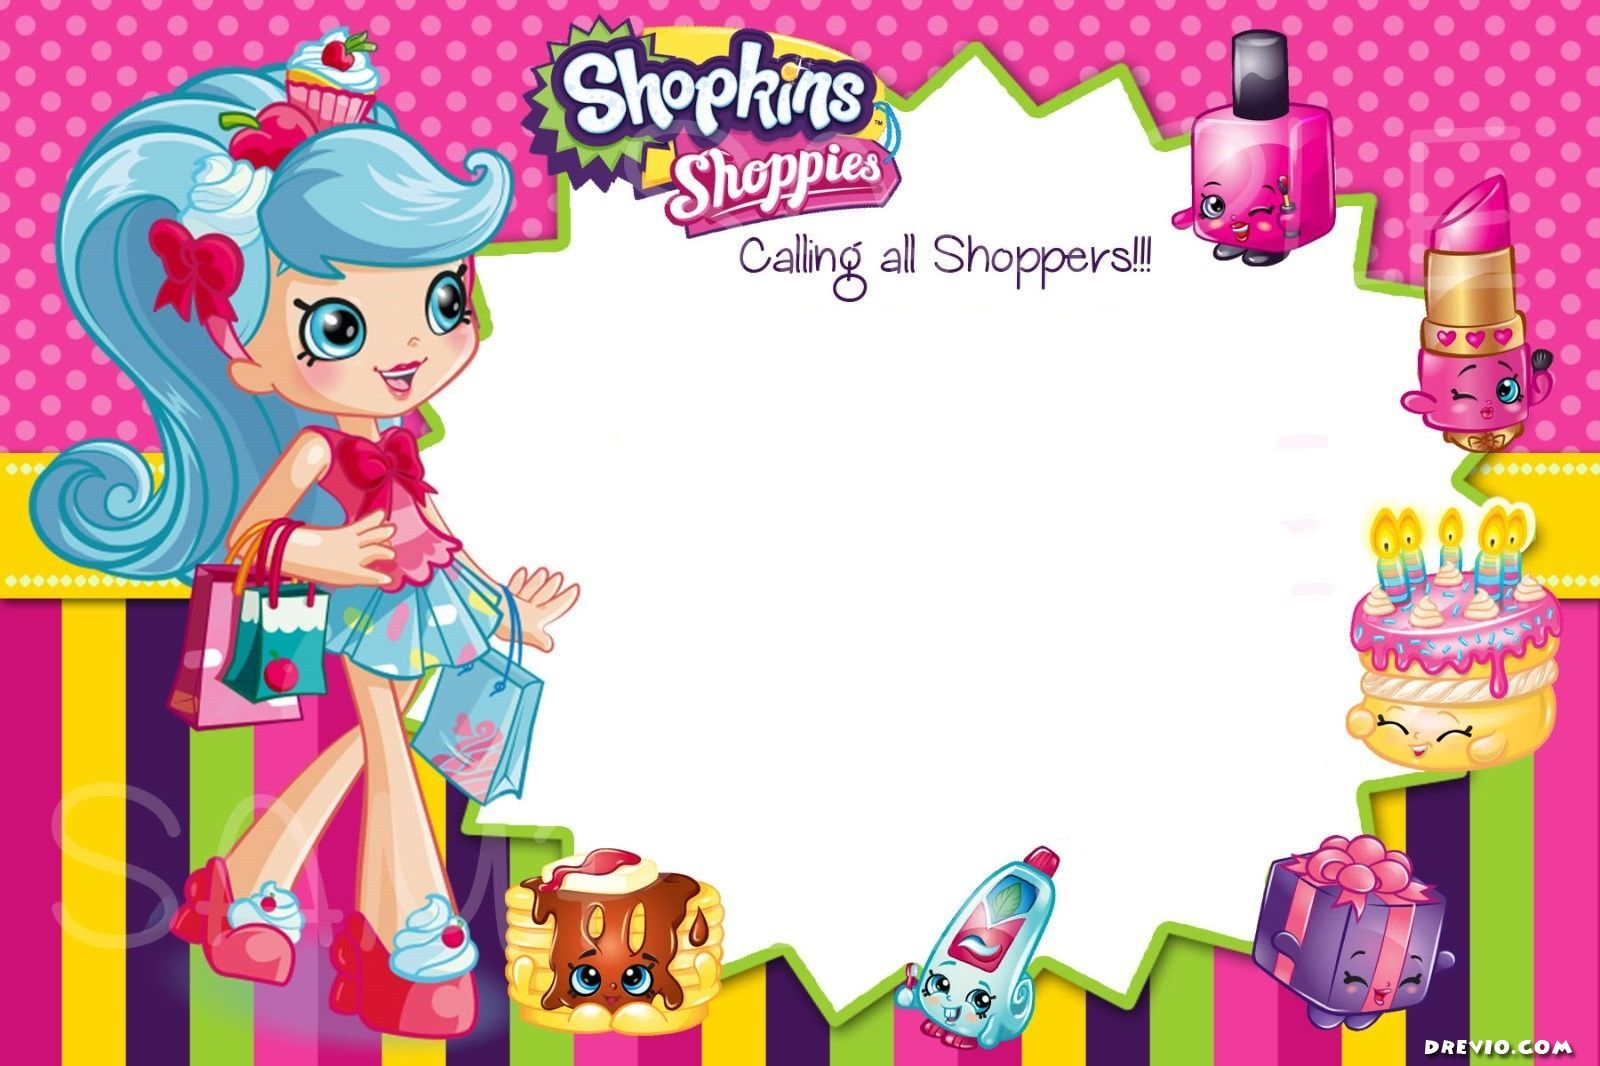 image about Free Printable Shopkins Invitations named Current - Free of charge Printable Shopkins Birthday Invitation